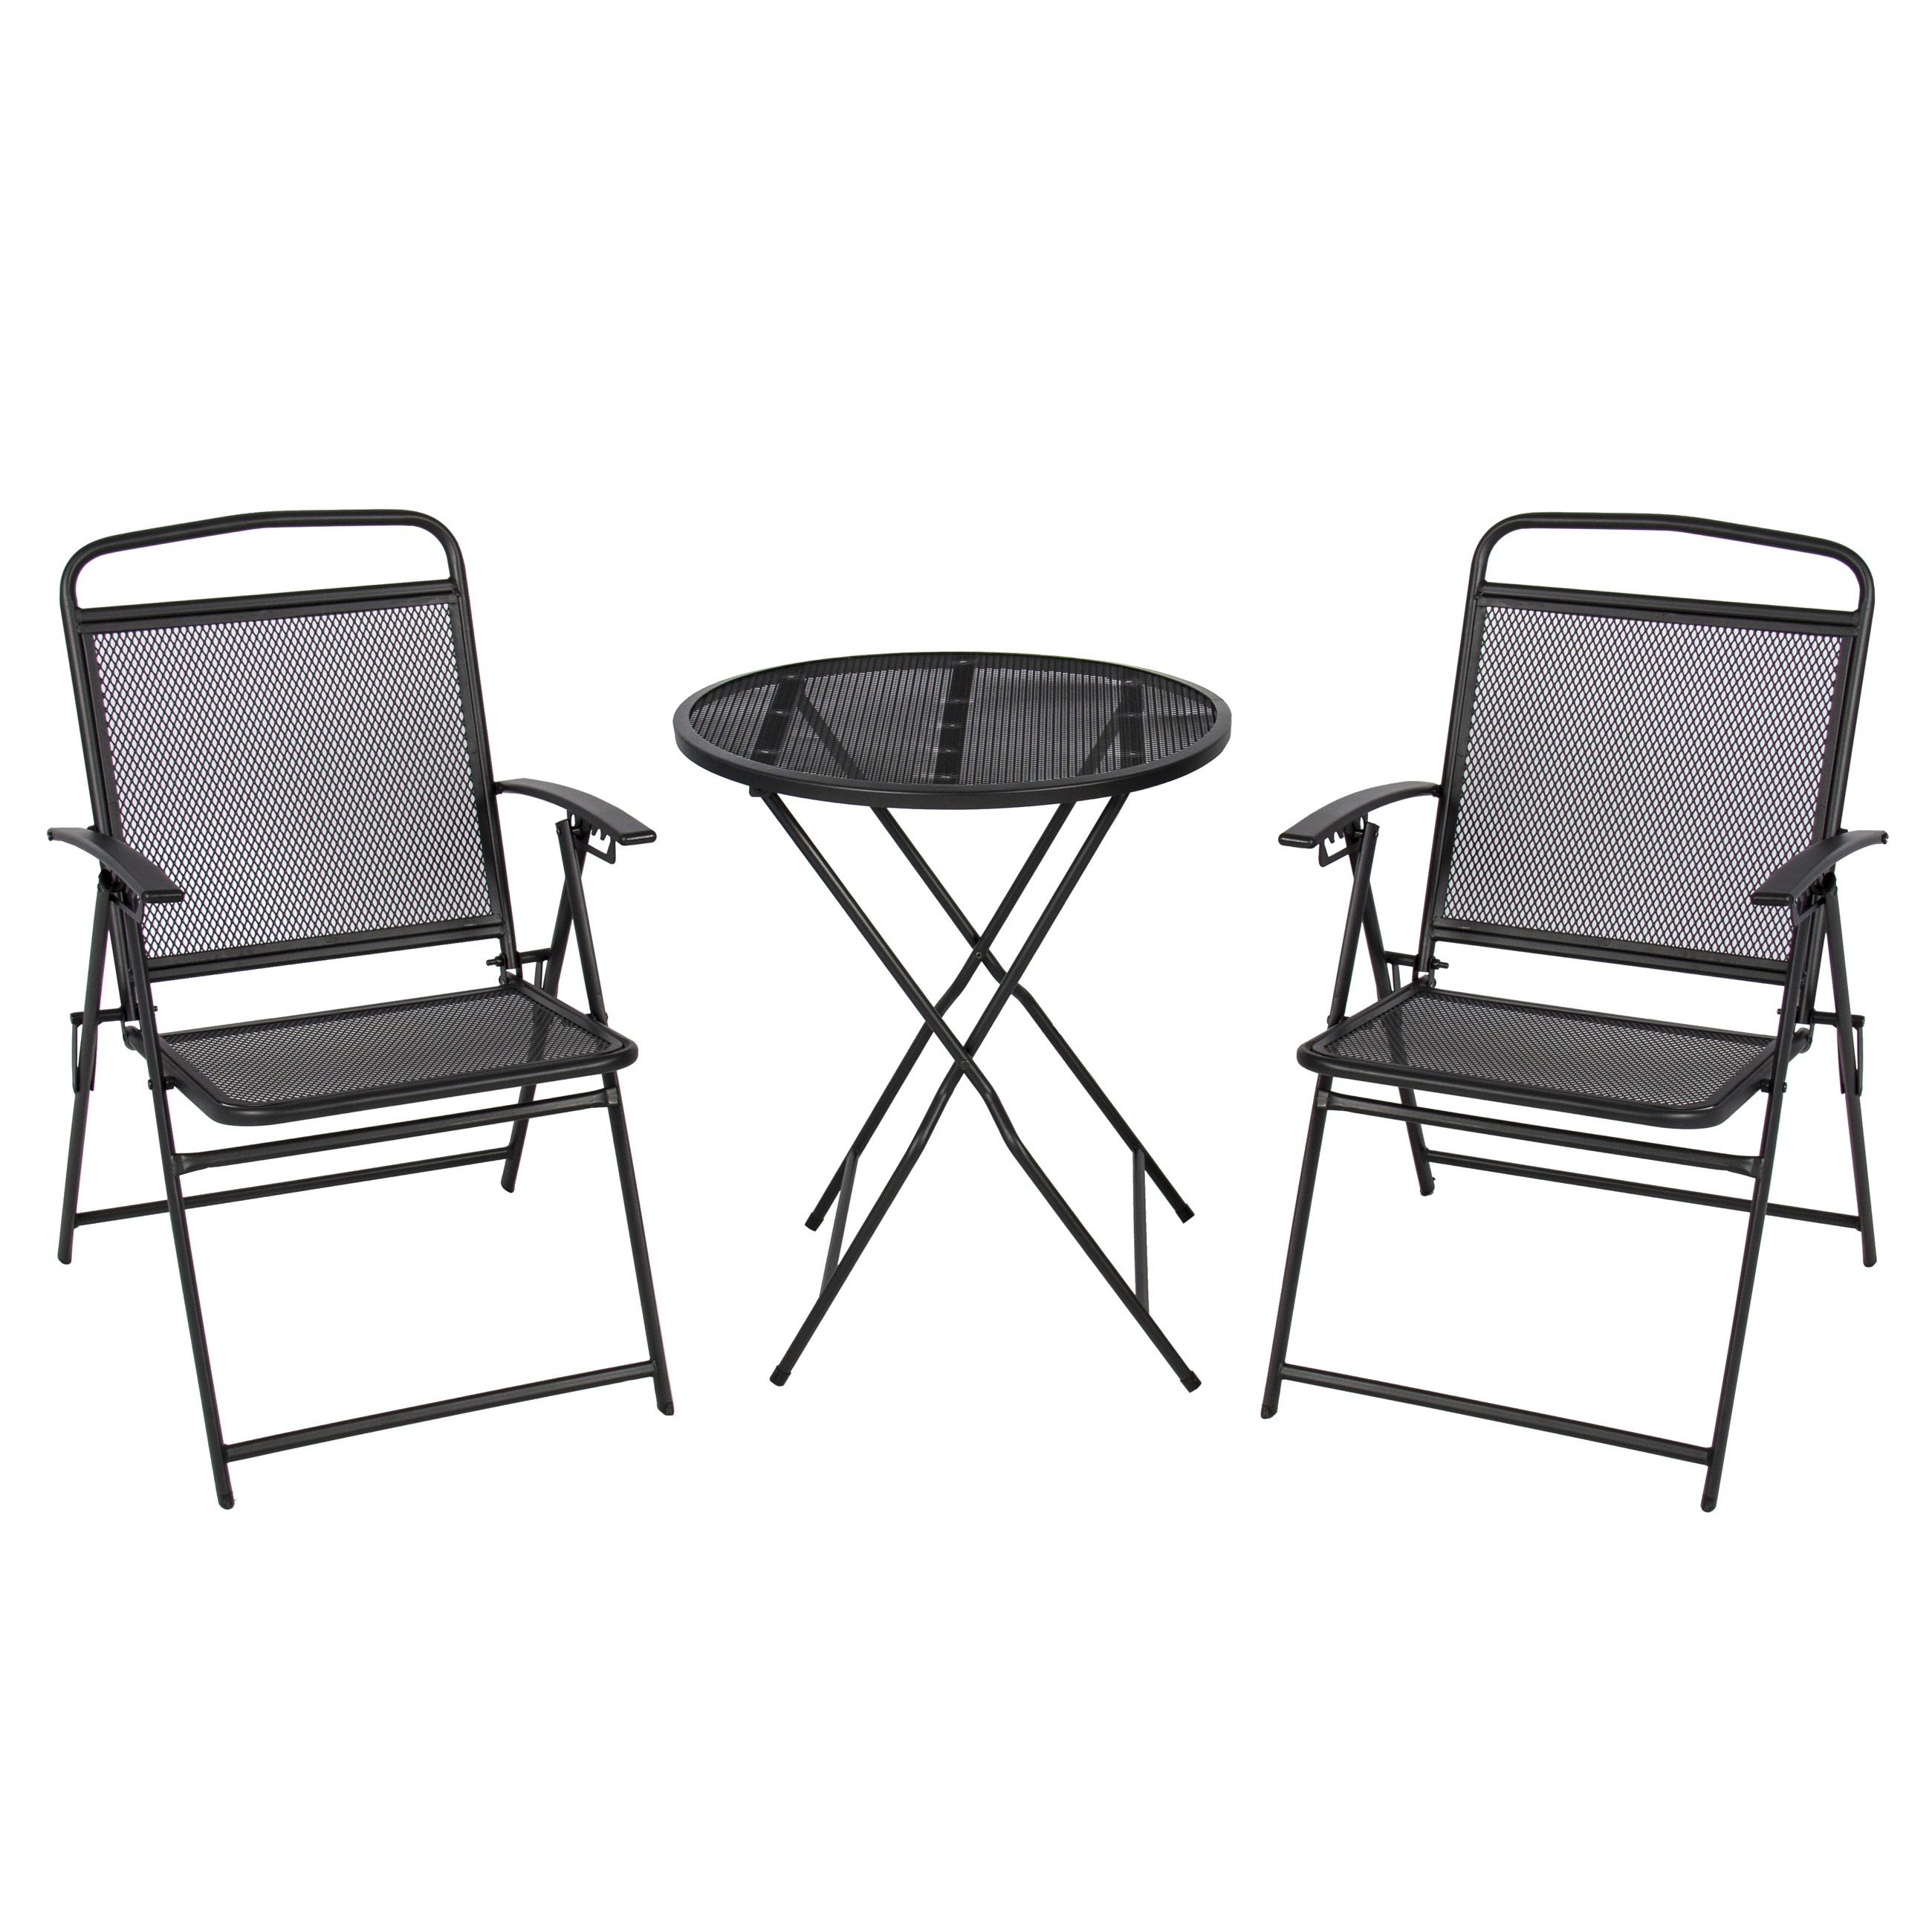 3 pc patio bistro set outdoor table and chairs wrough iron with black finish - Wrought Iron Patio Set